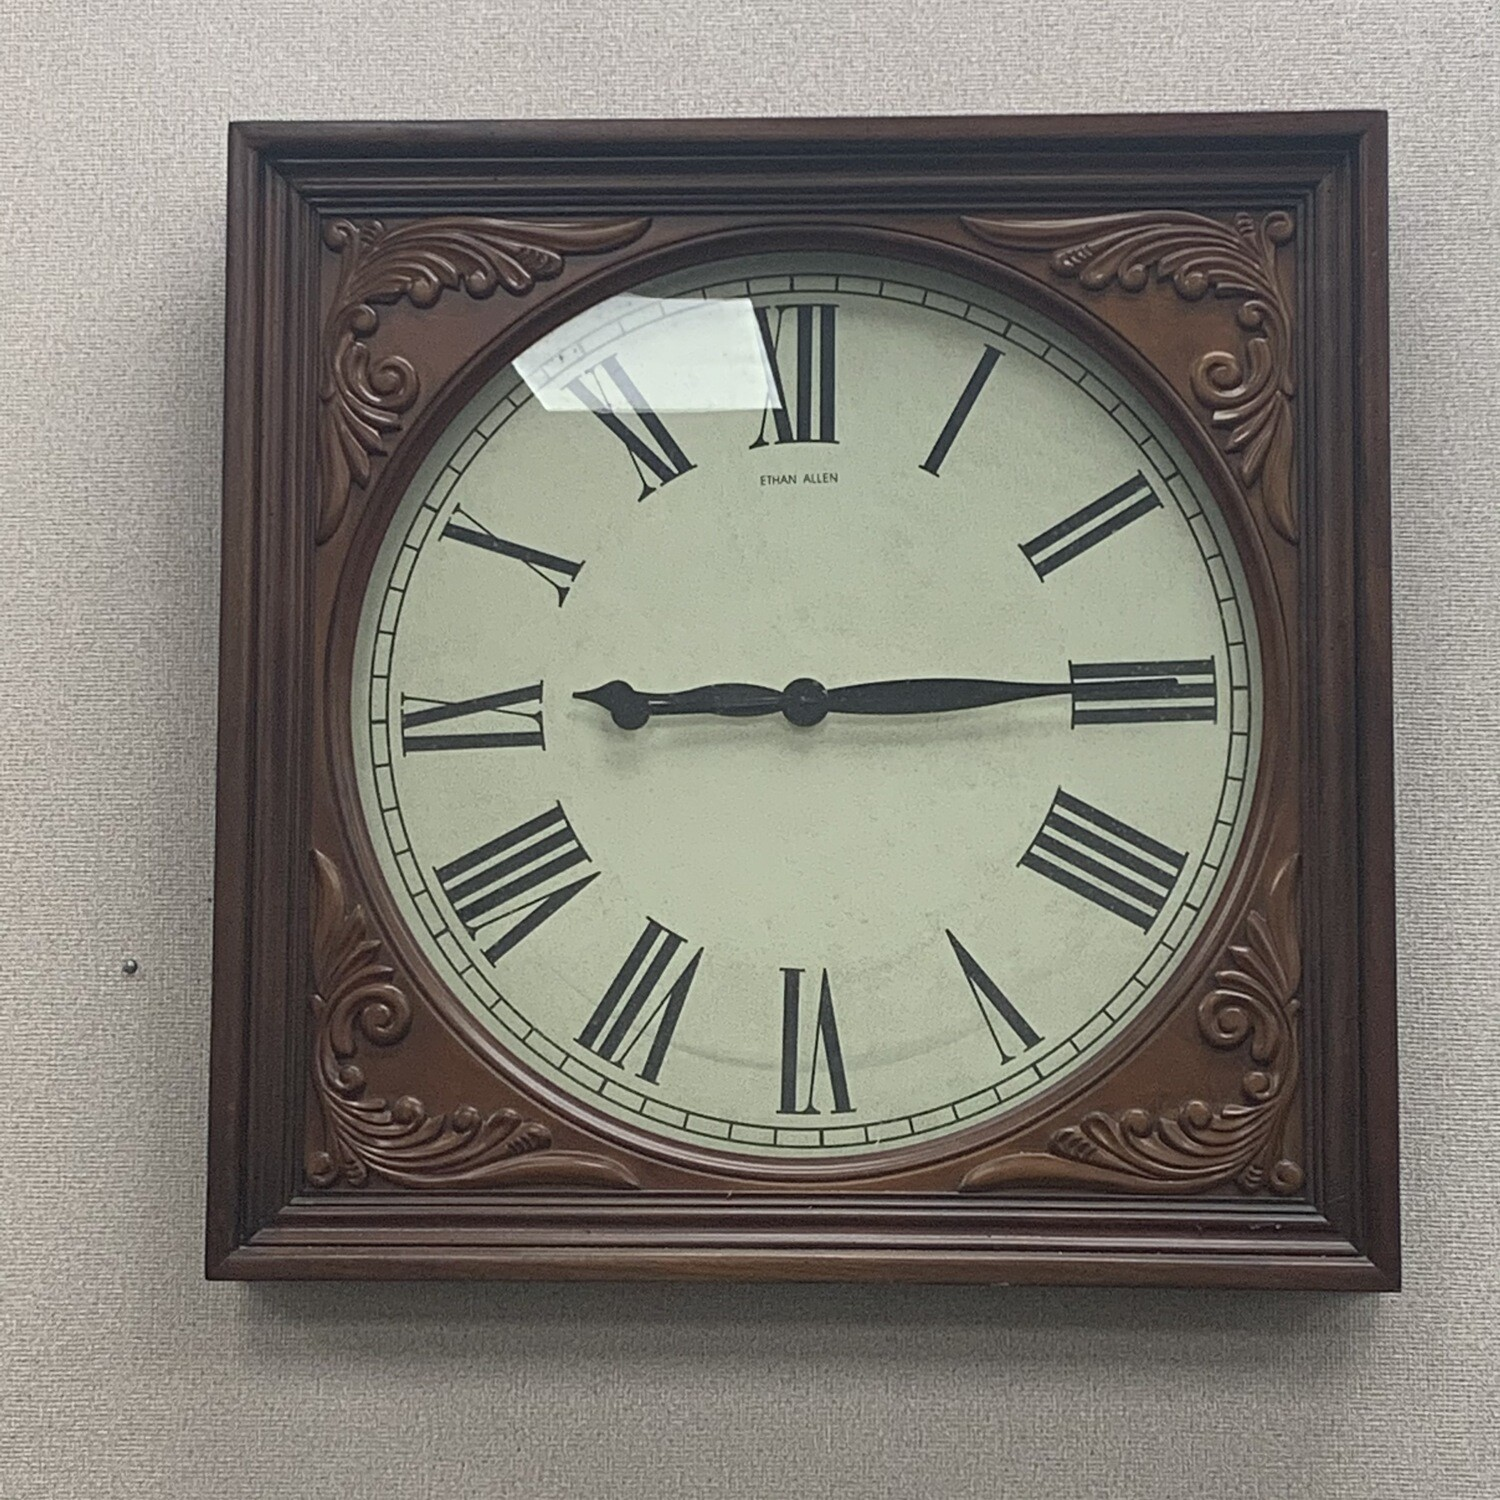 Ethan Allen Wood Framed Wall Clock